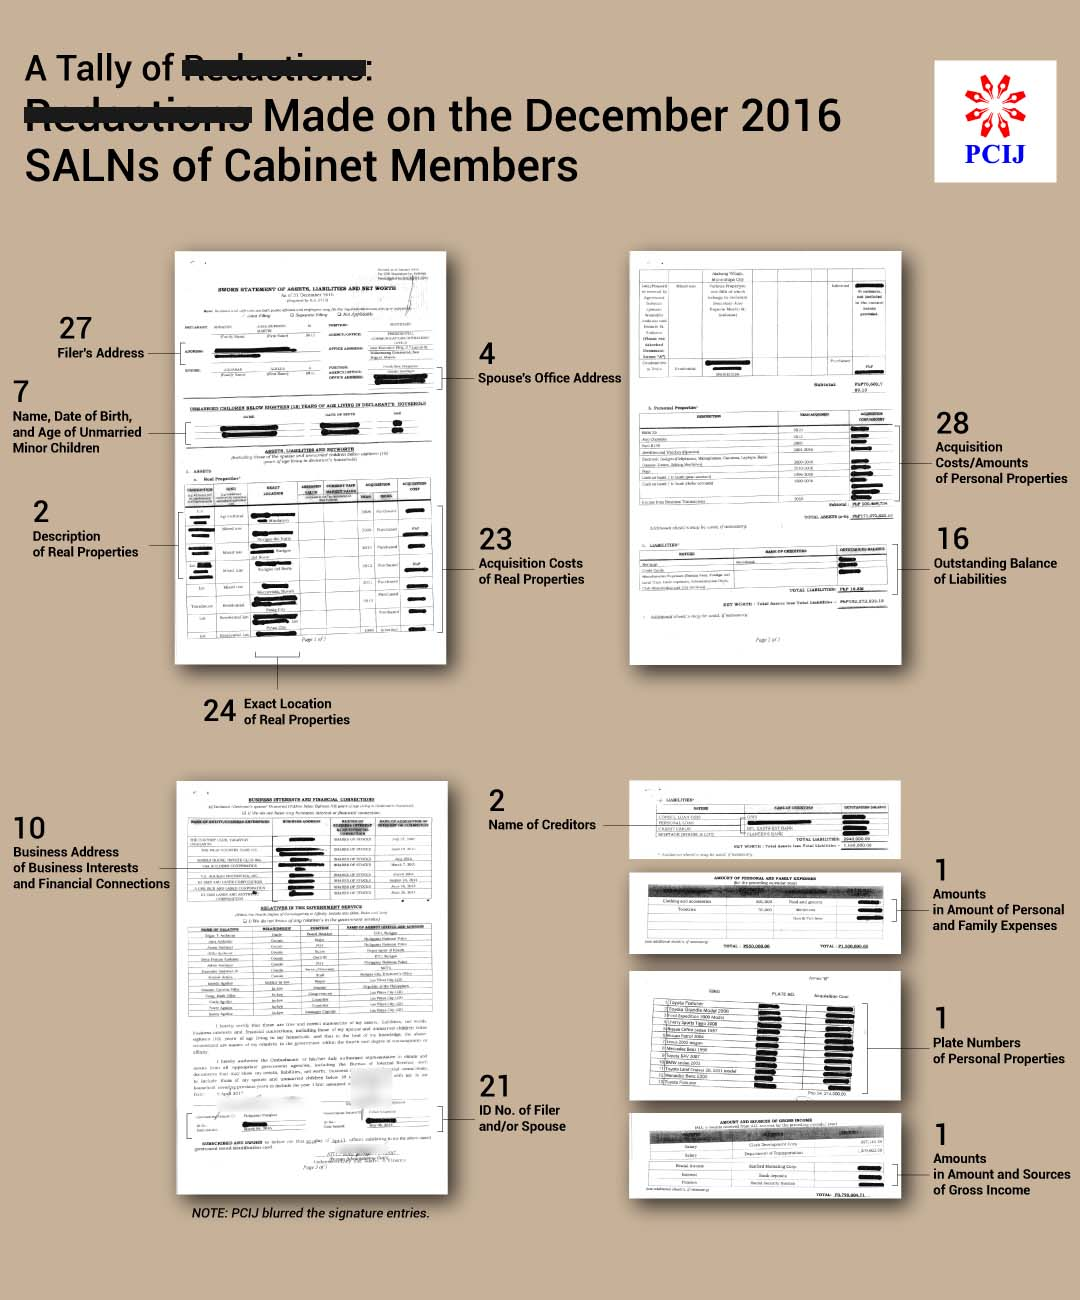 SALN to impeach CJ but Palace conceals Cabinet wealth details ...